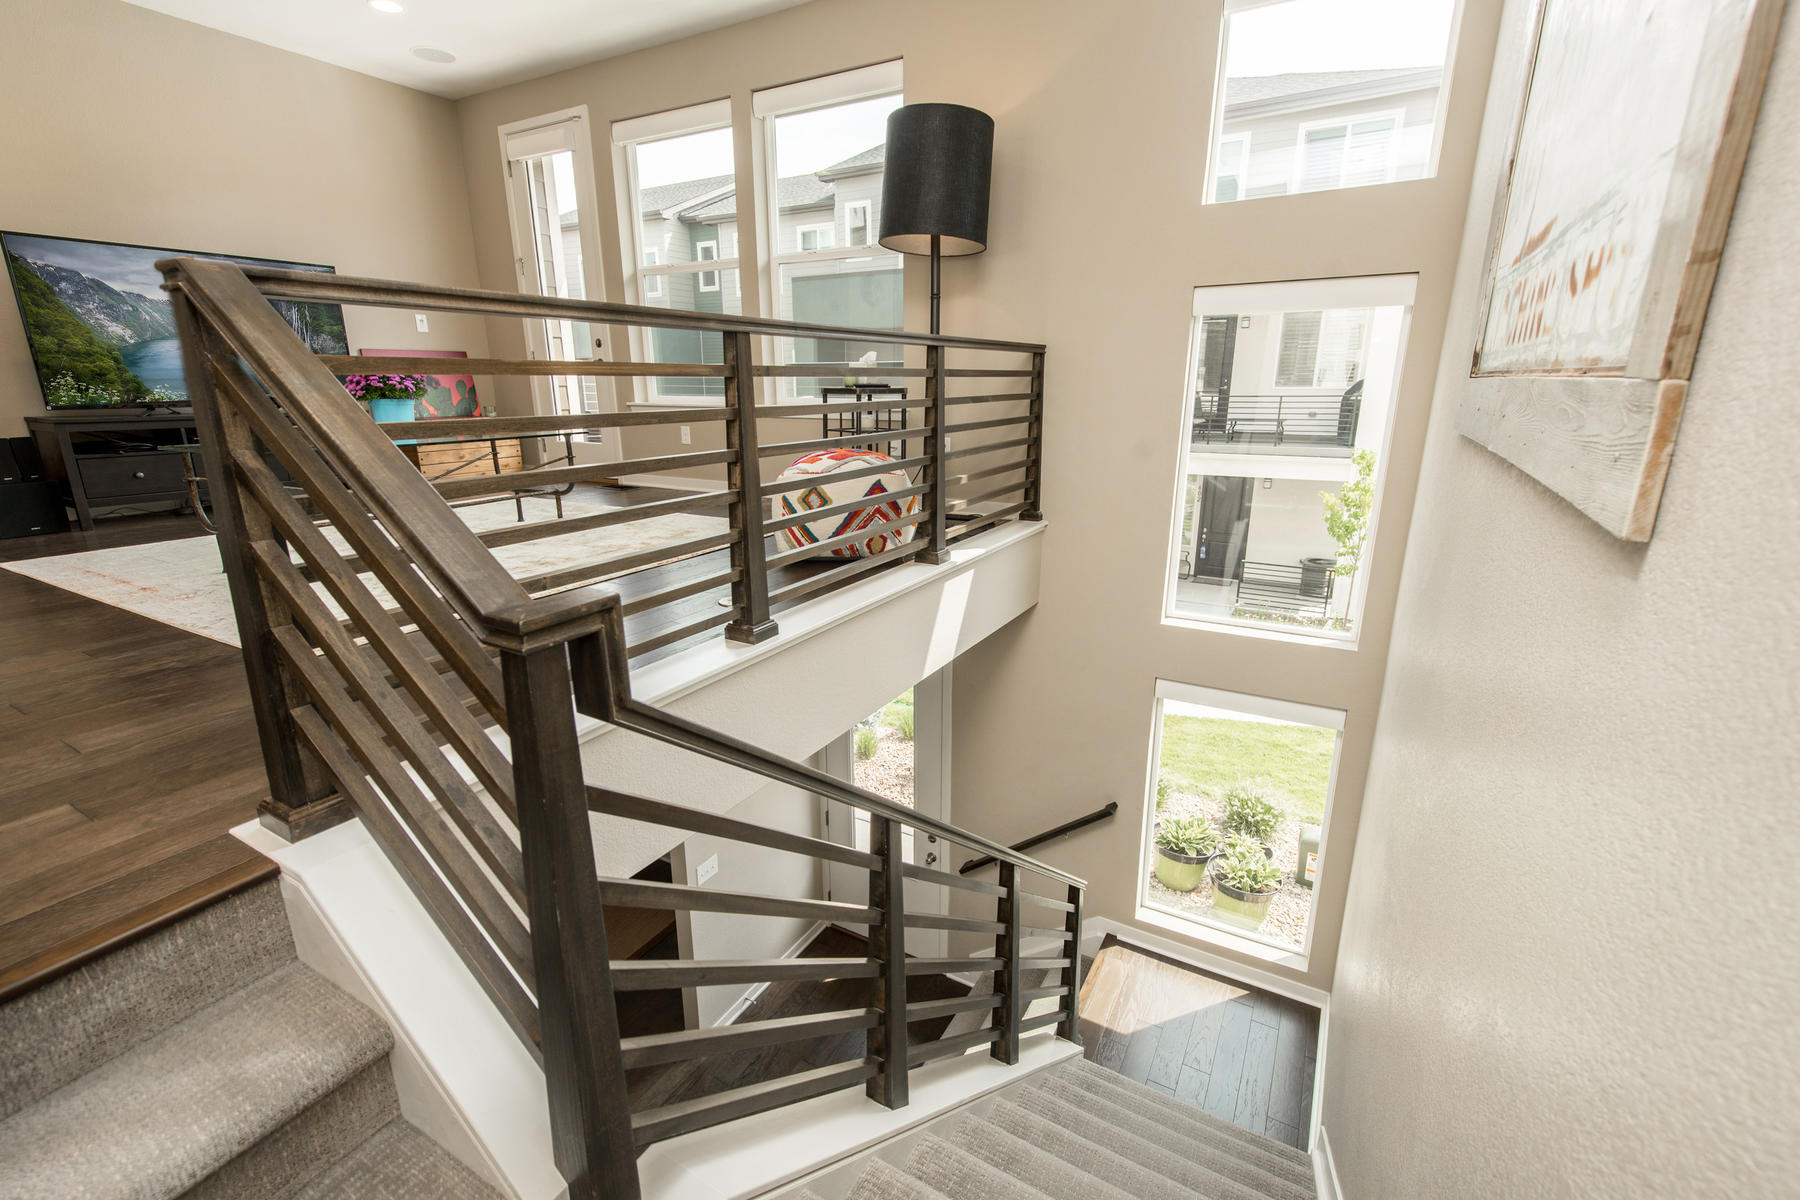 Additional photo for property listing at Beautifully appointed modern/contemporary 3 story in Littleton Village! 582 E Hinsdale Ave Littleton, Colorado 80122 United States